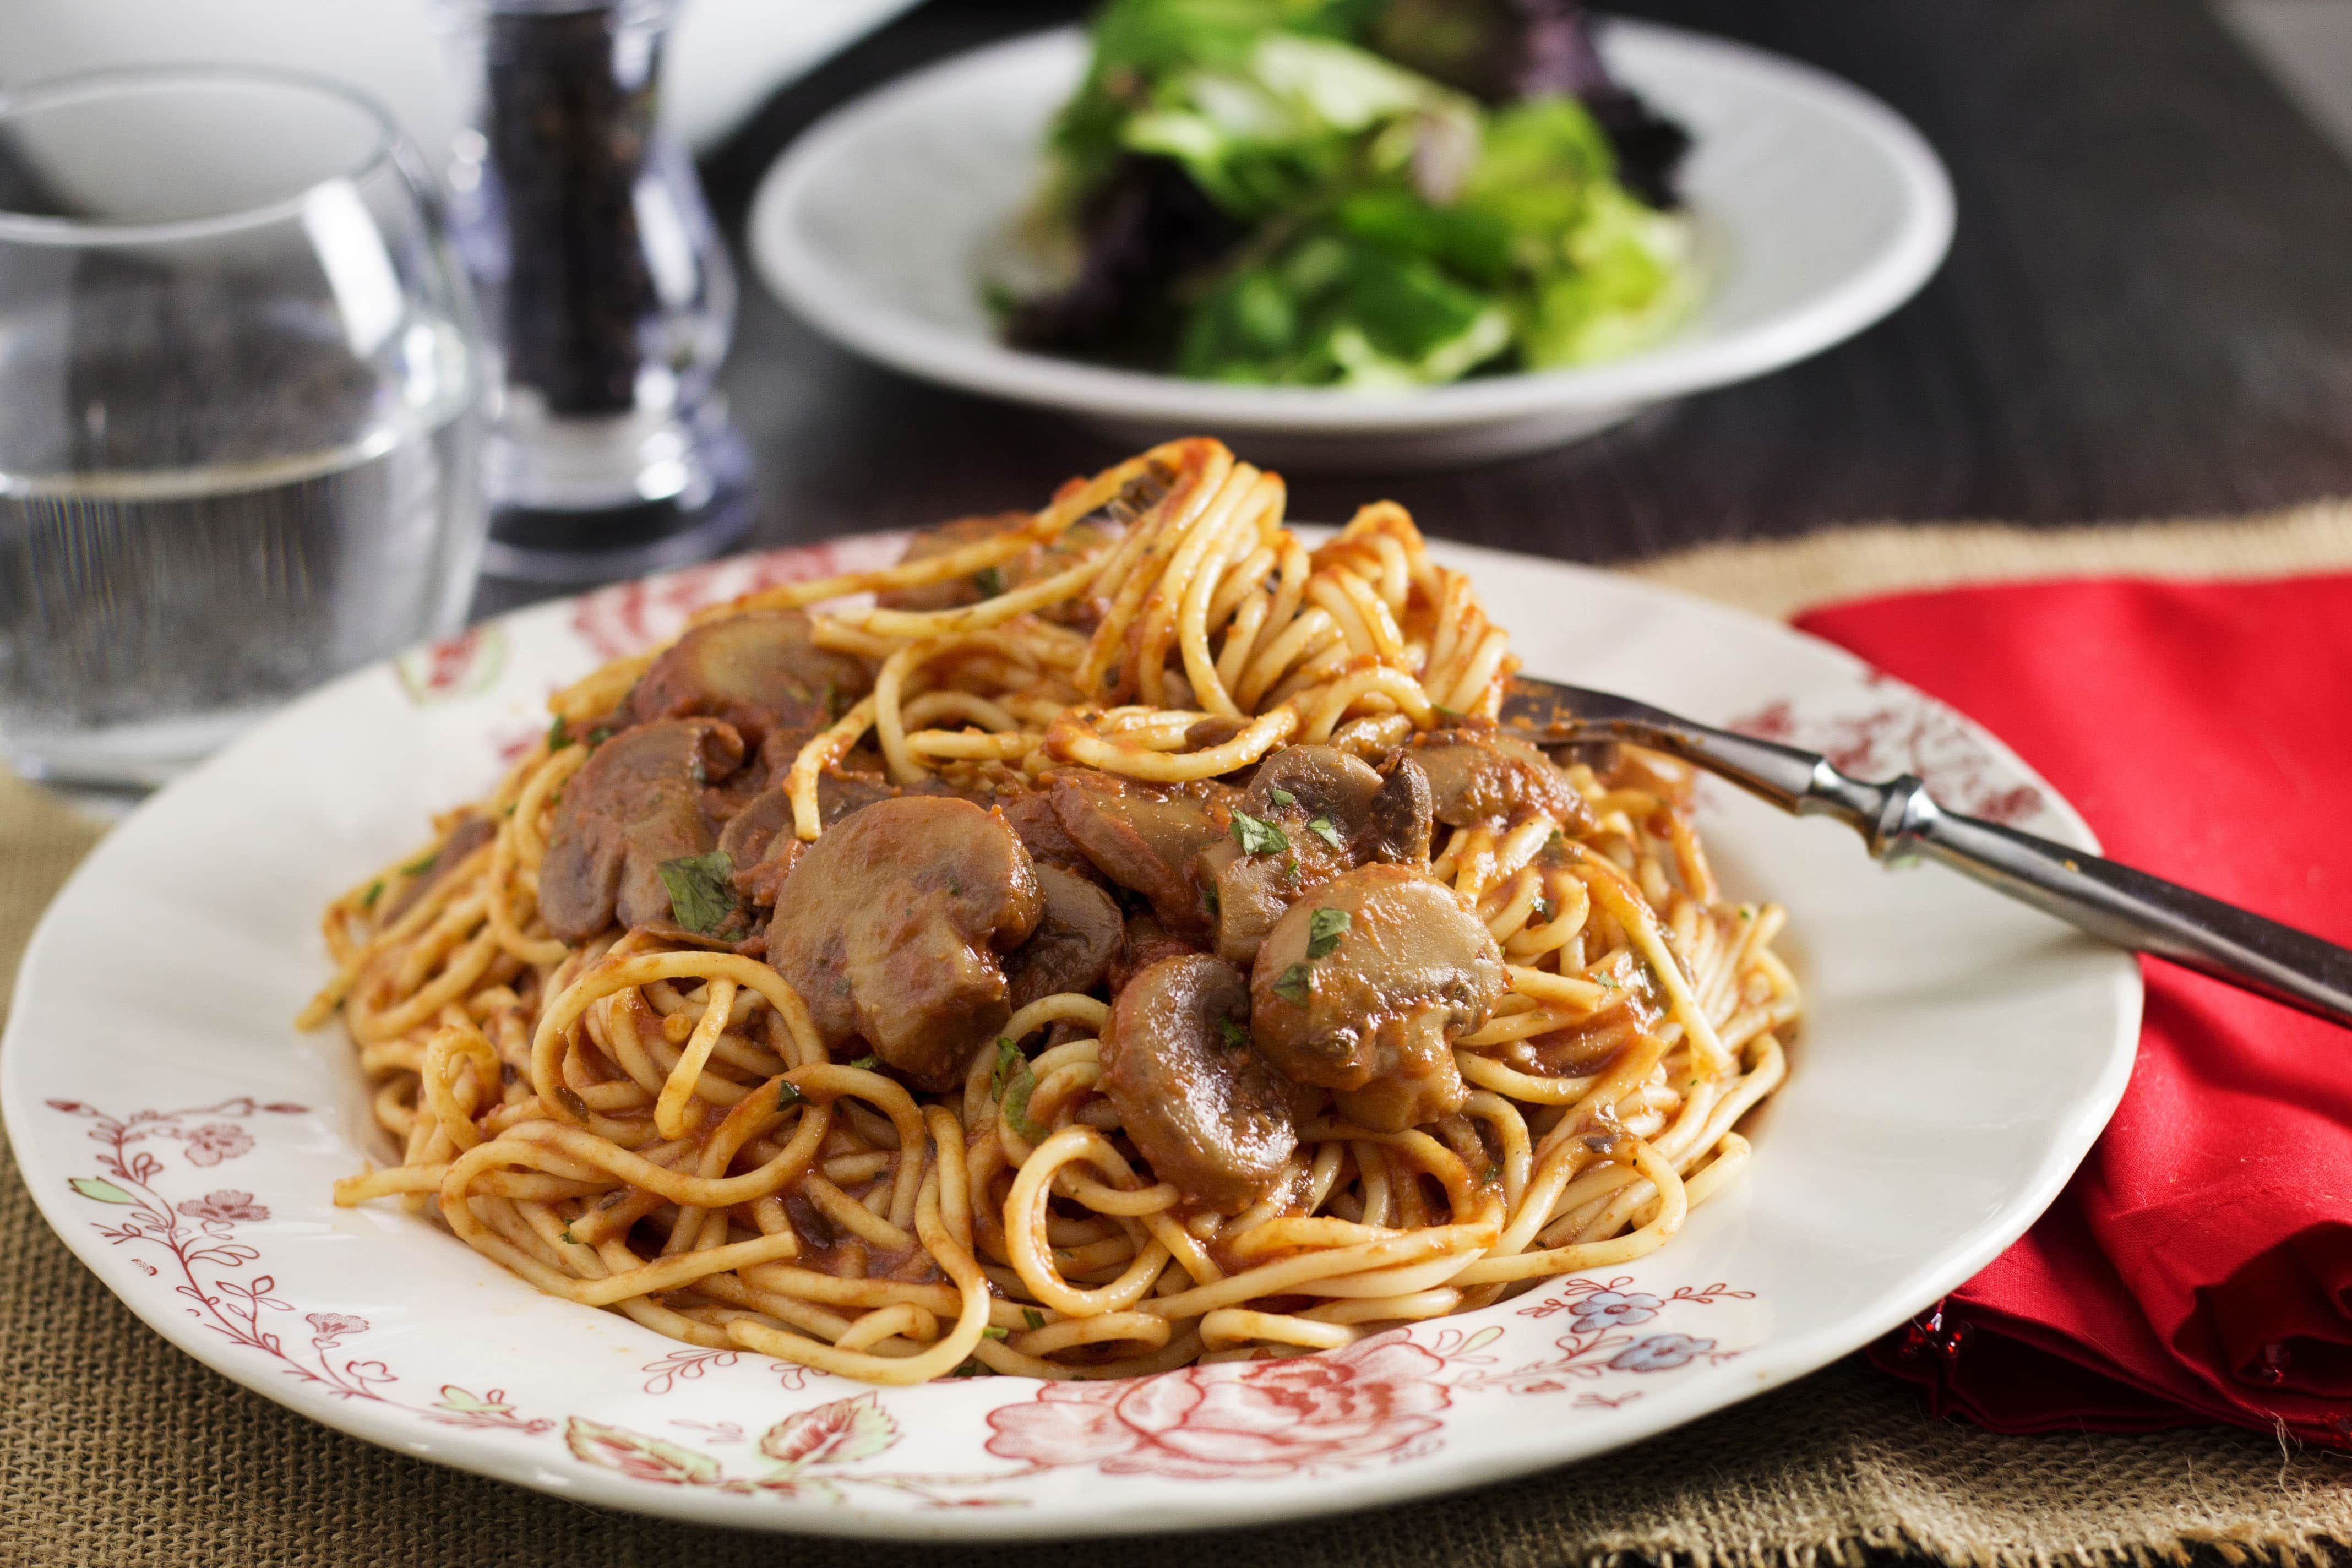 Spaghetti With Mushroom Tomato Sauce - Erren's Kitchen - This quick and easy recipe is a simple vegetarian pasta dish which will see you through many a weeknight meals.